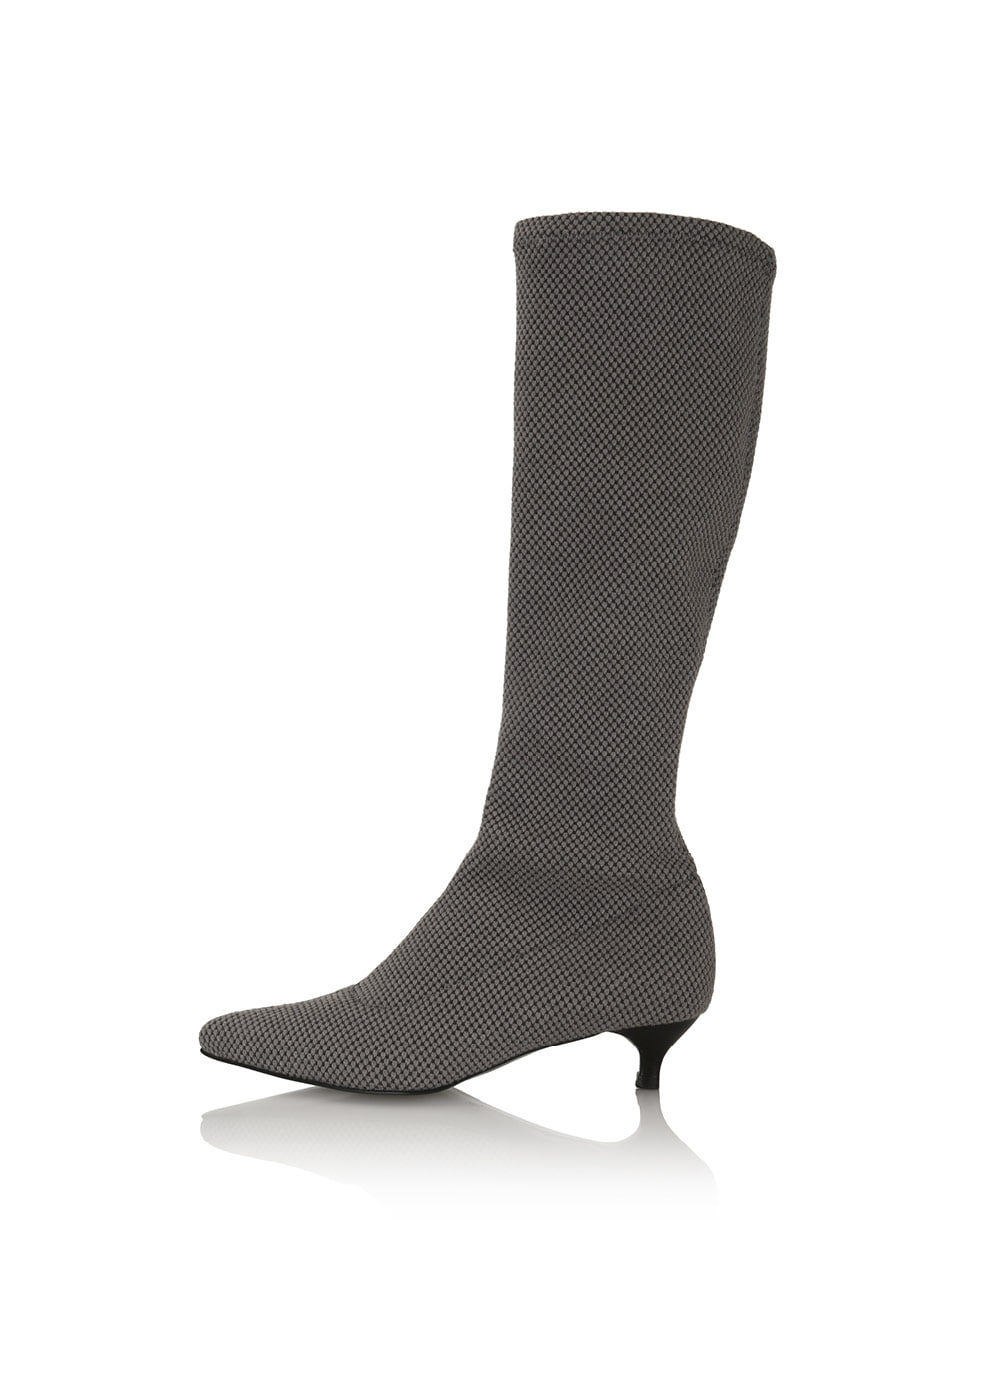 Y.04 Riri Socks Long Boots / Y.04-B16 / 4 colors